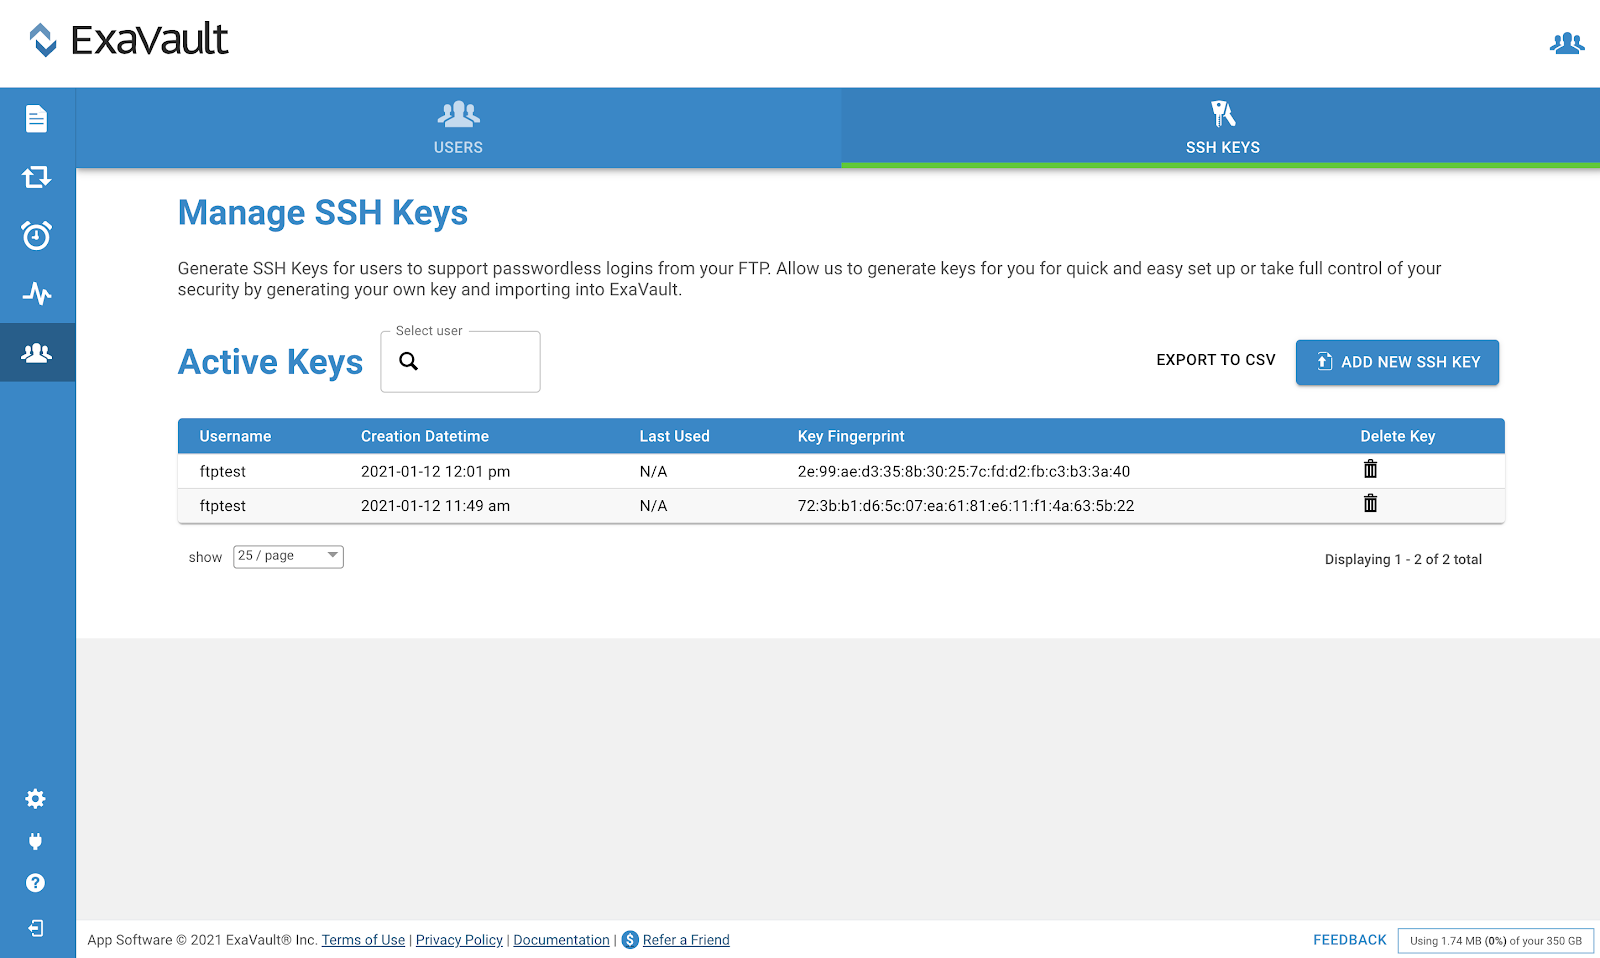 Interface for managing SSH keys in ExaVault.